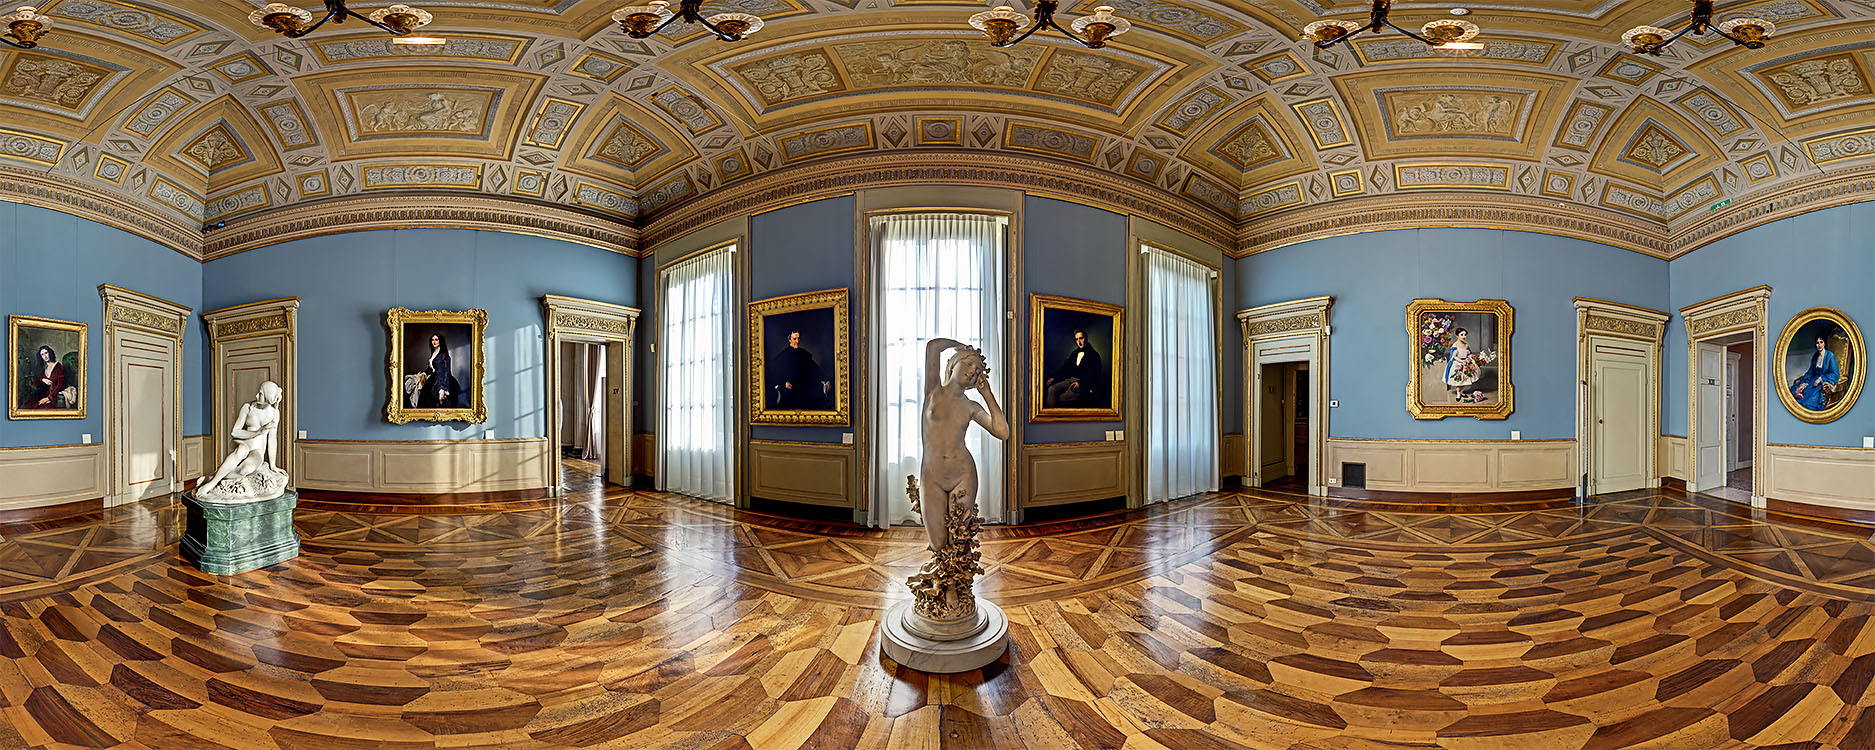 The Hall of Francesco Hayez, the greatest Italian painter of the 19th Century